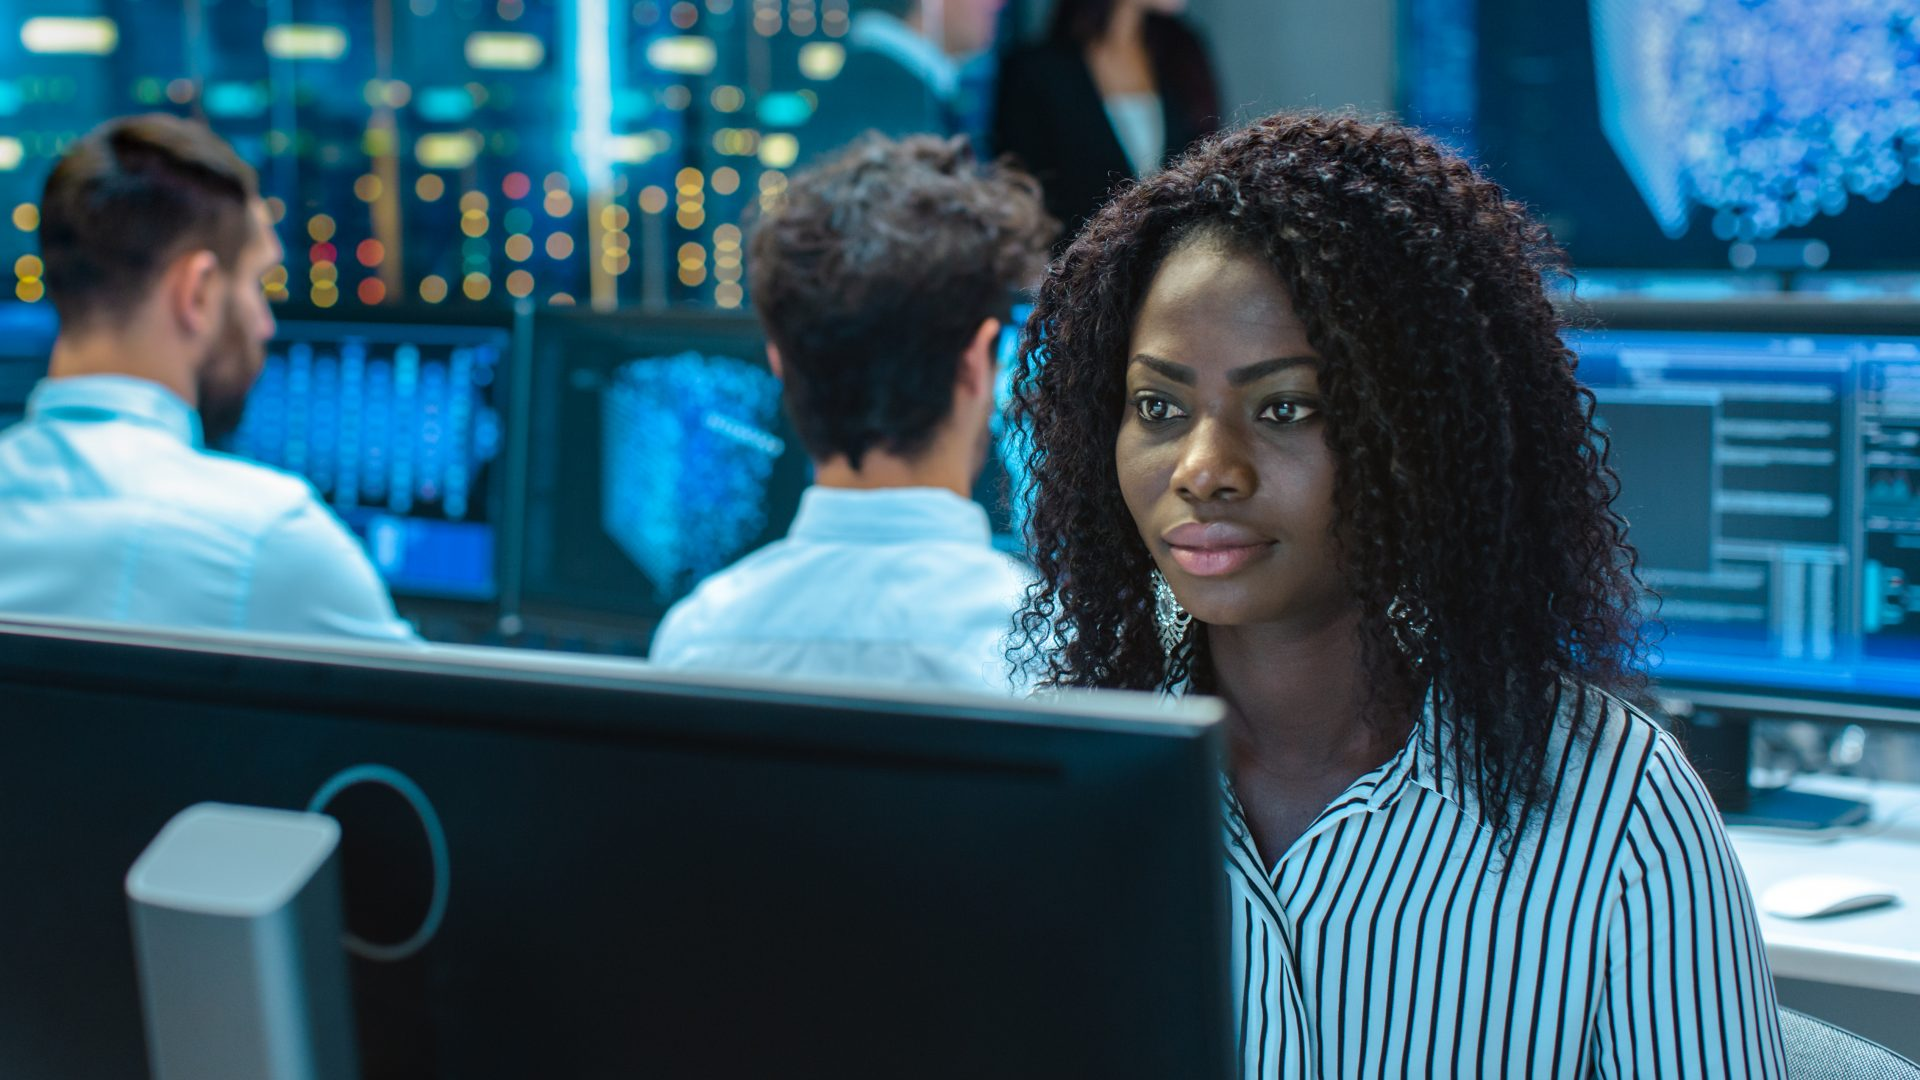 OT Cyber Security in the Connected Workplace